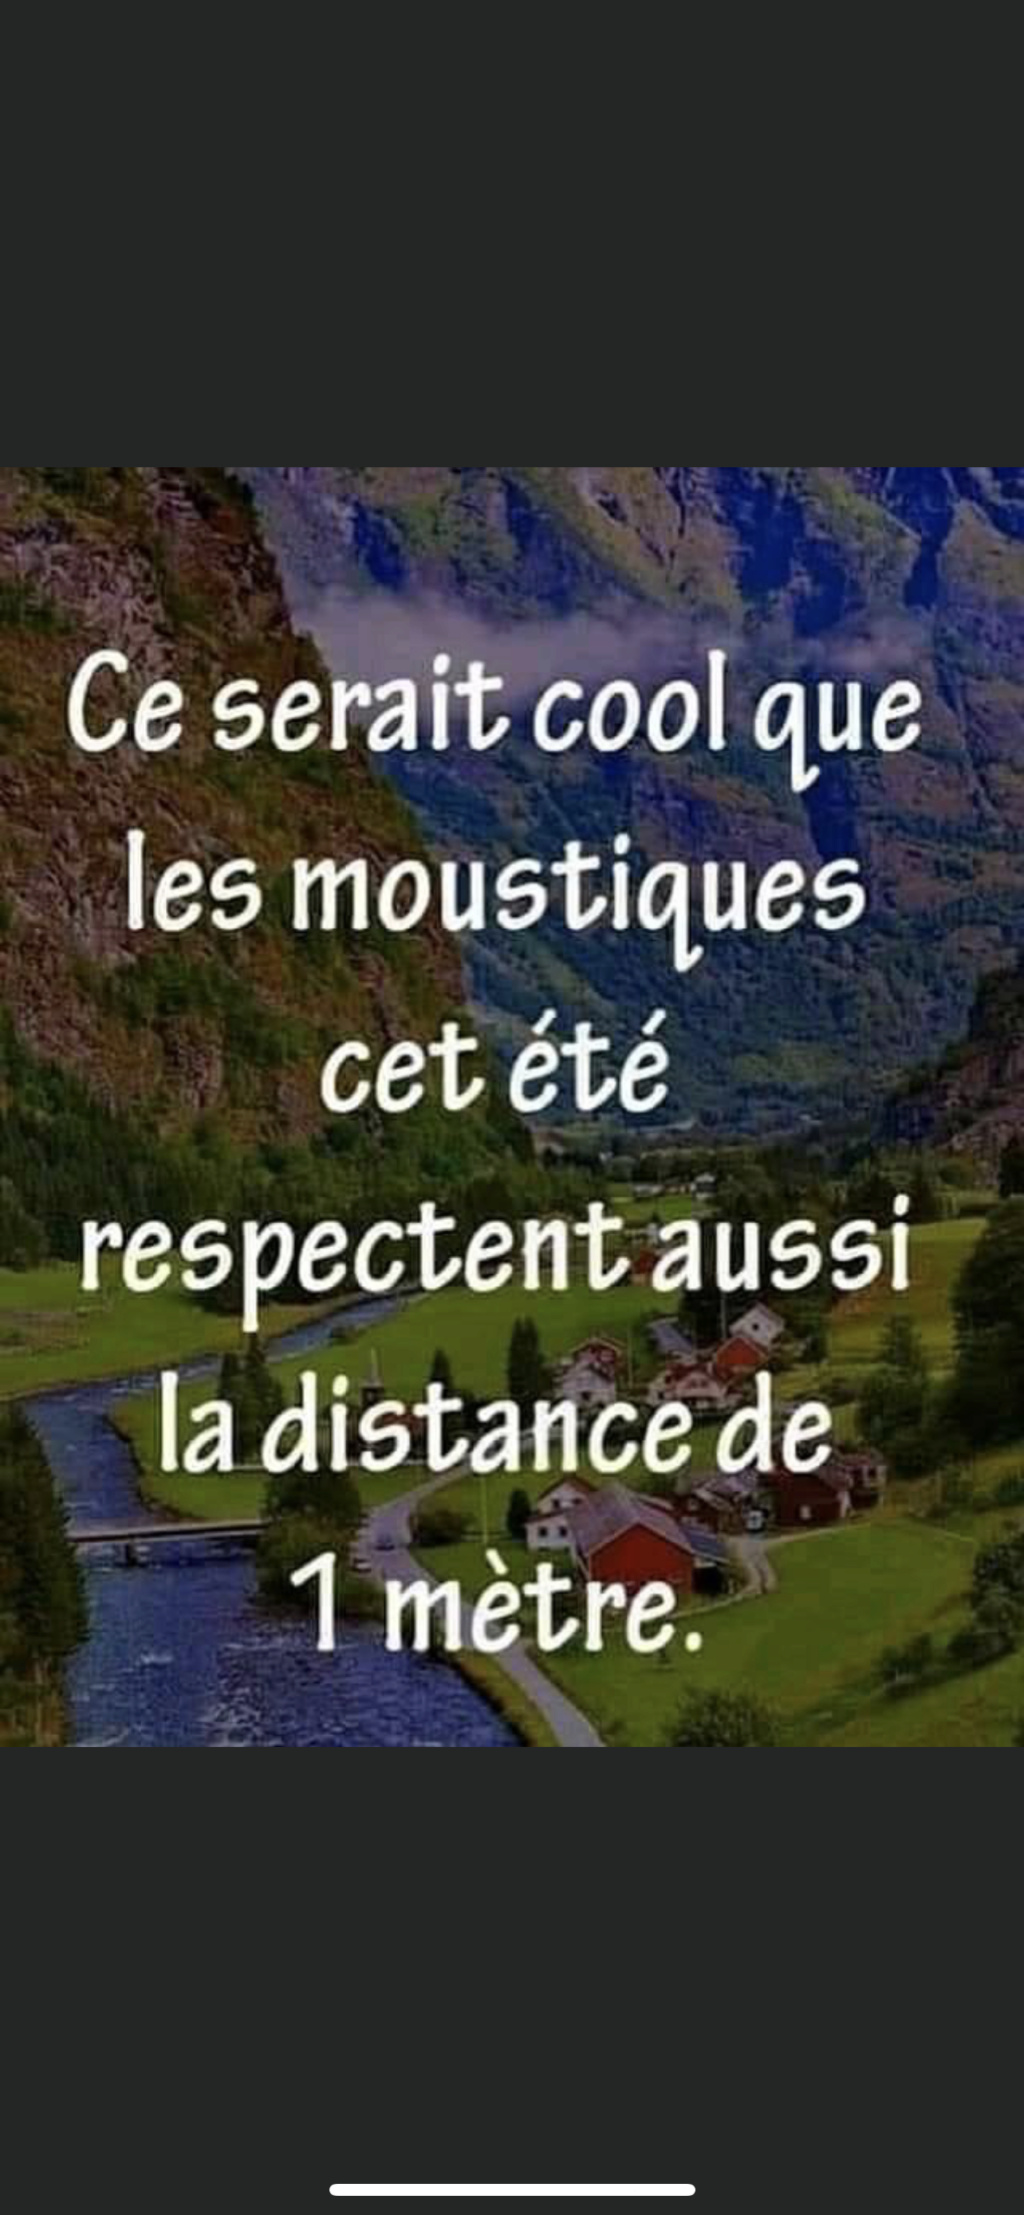 humour - Page 2 79f36510